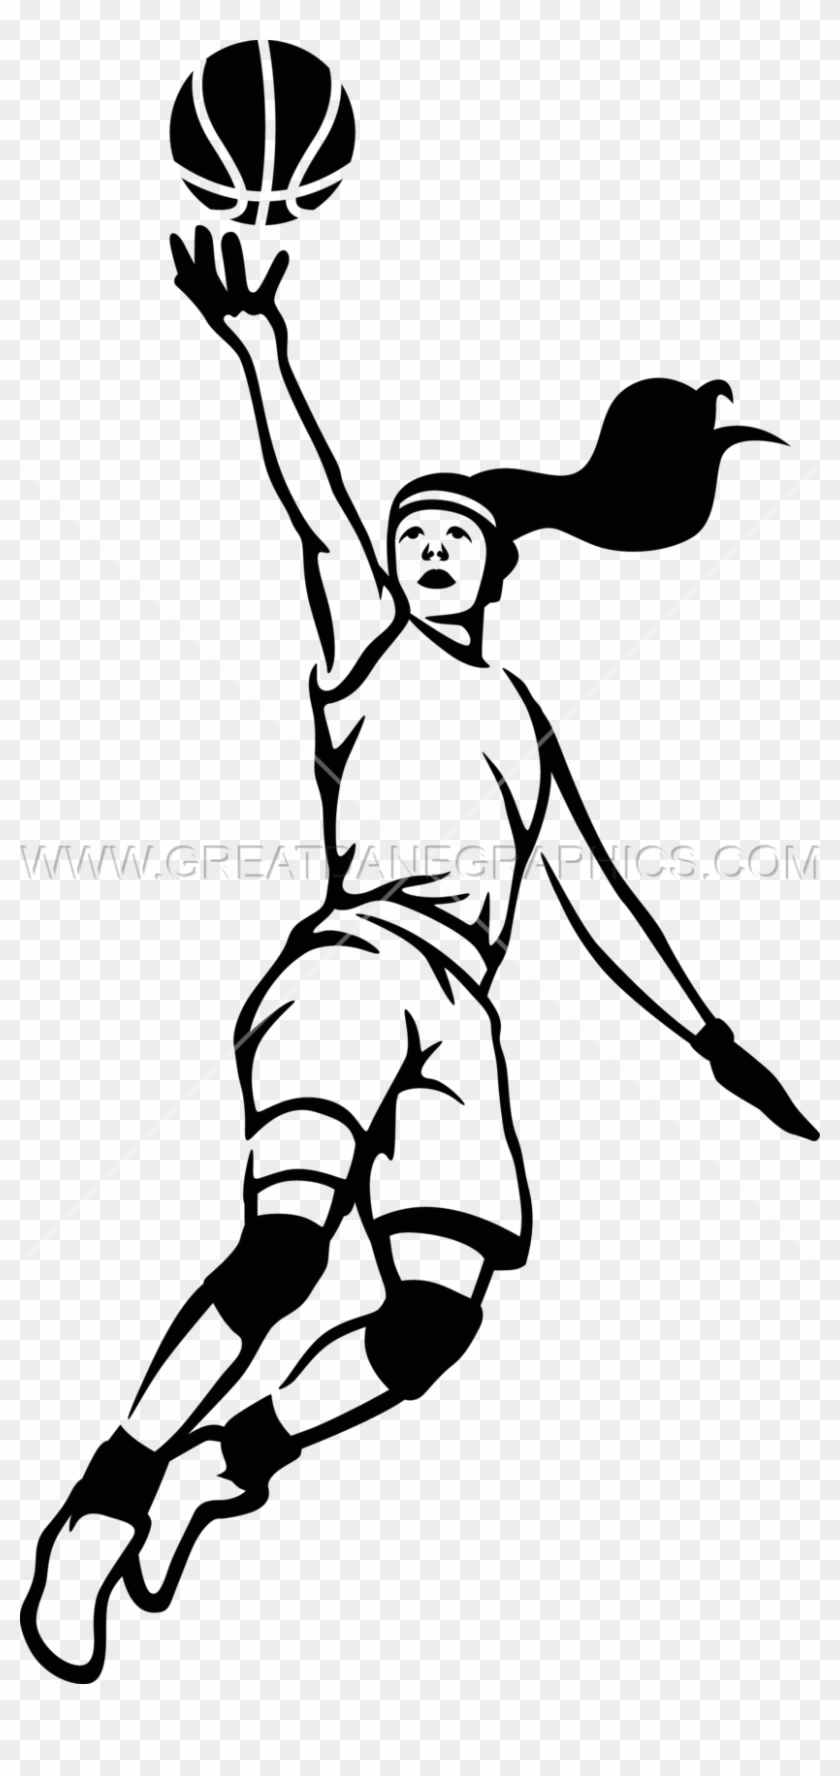 Basketball player,Line art,Clip art,Black.